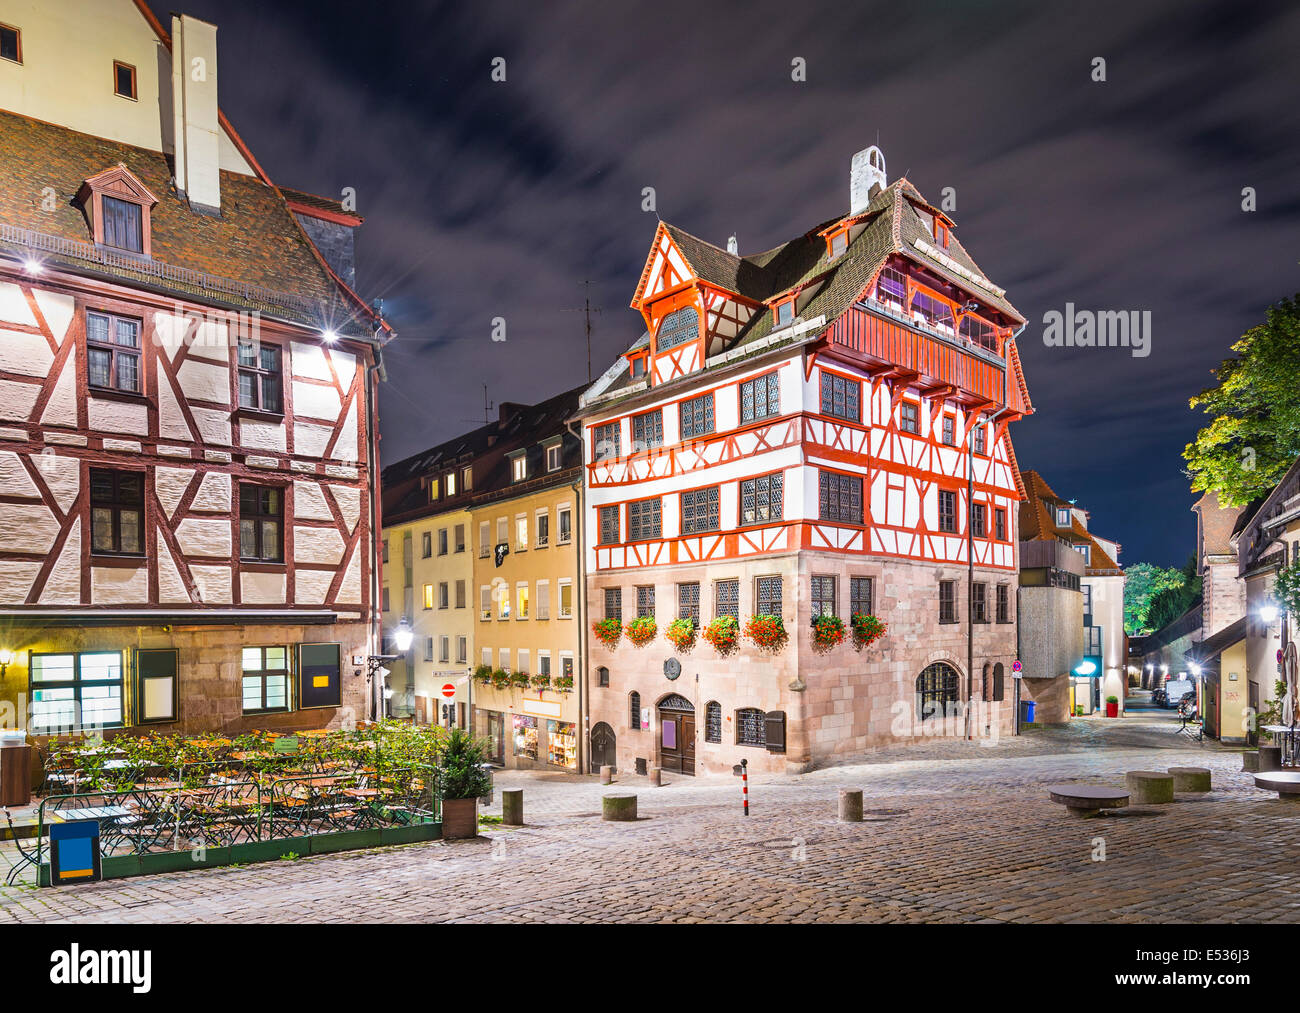 Nuremberg, Germany at Albrecht Durer house. - Stock Image